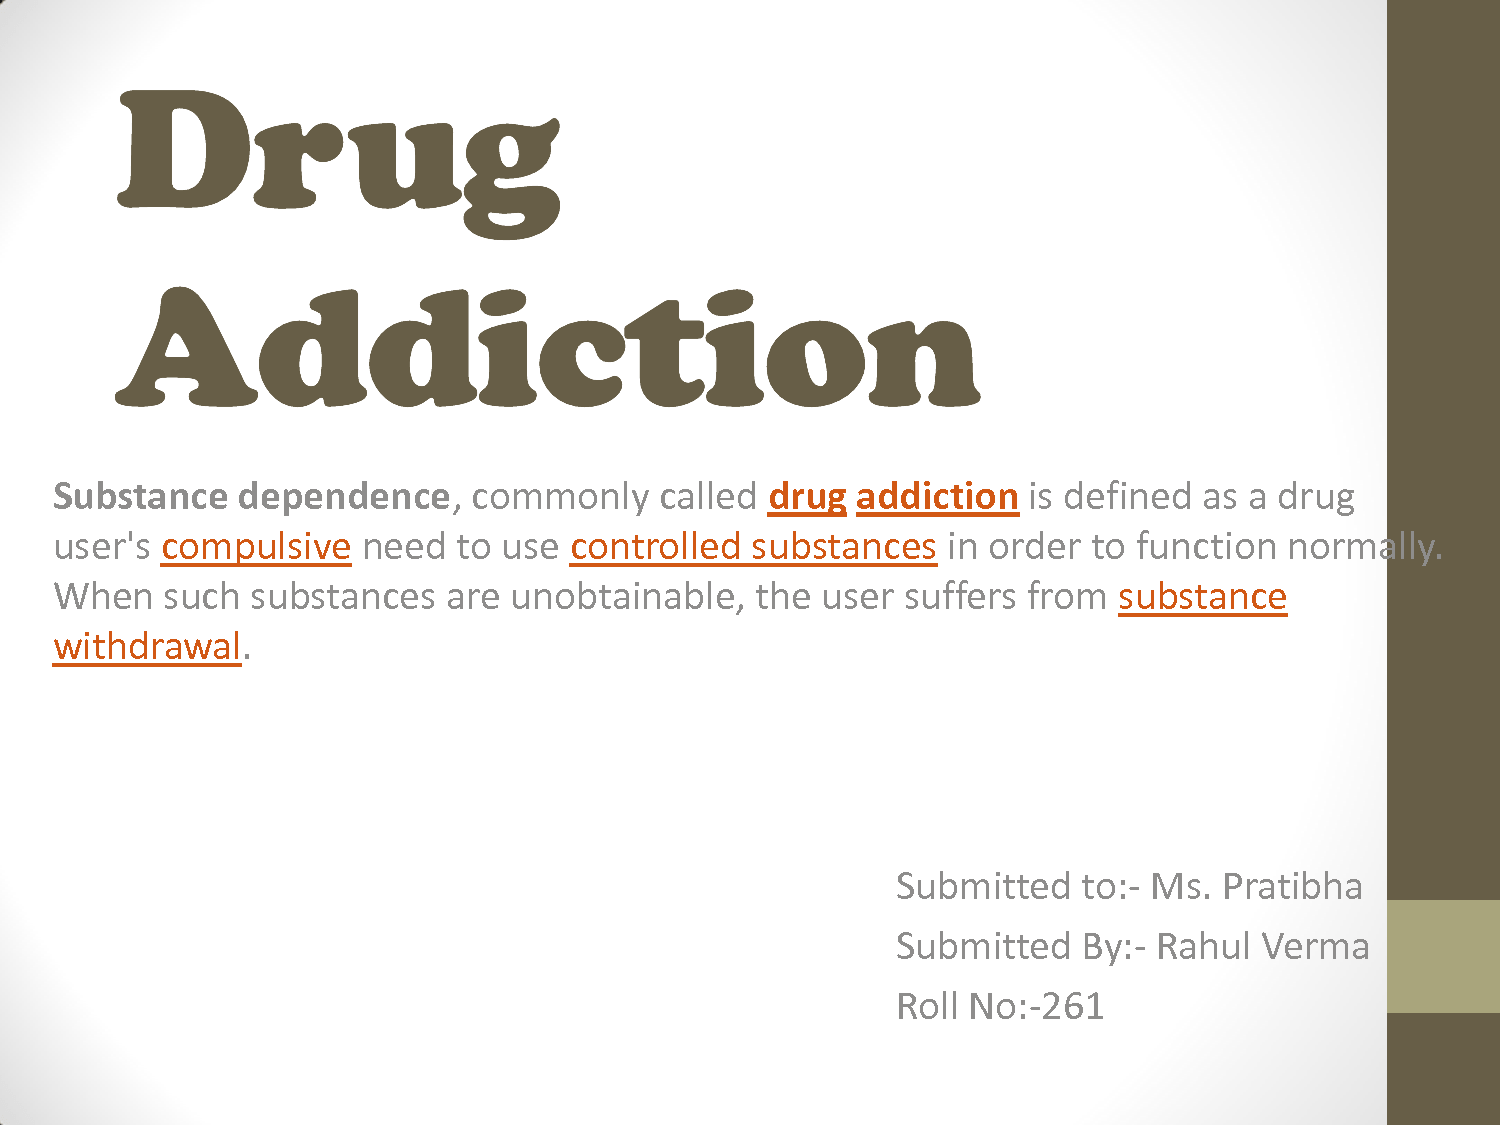 Quotes About Addiction Addiction Quotes Drug Addiction Substance  Picsmine